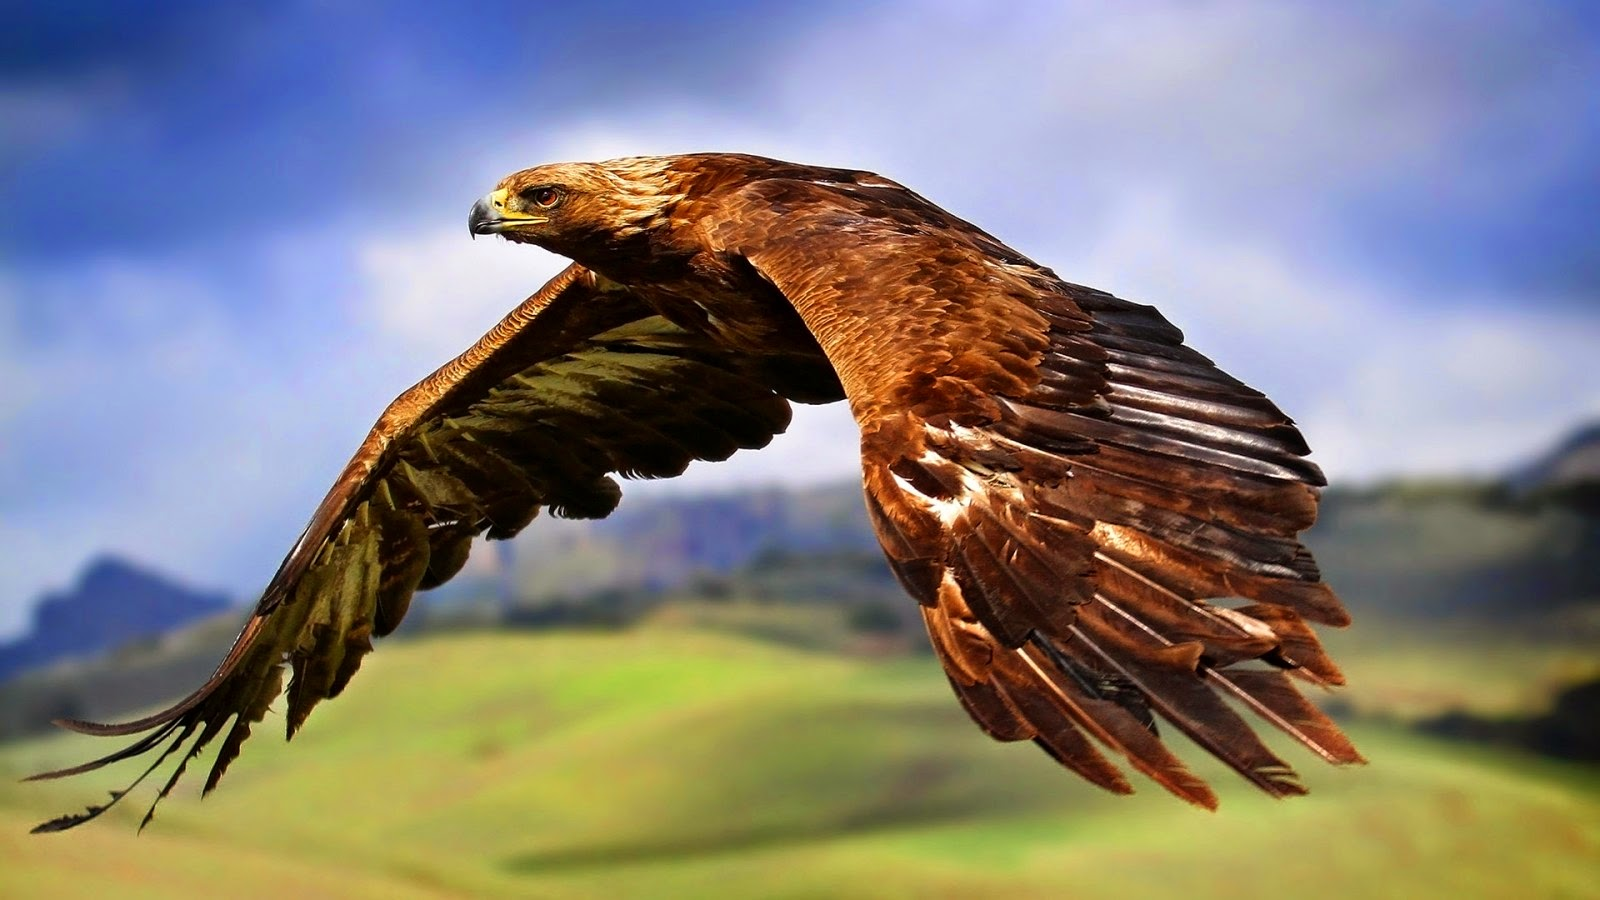 Beautiful Bald Eagle Wallpapers Free Download - FREE ALL HD ...